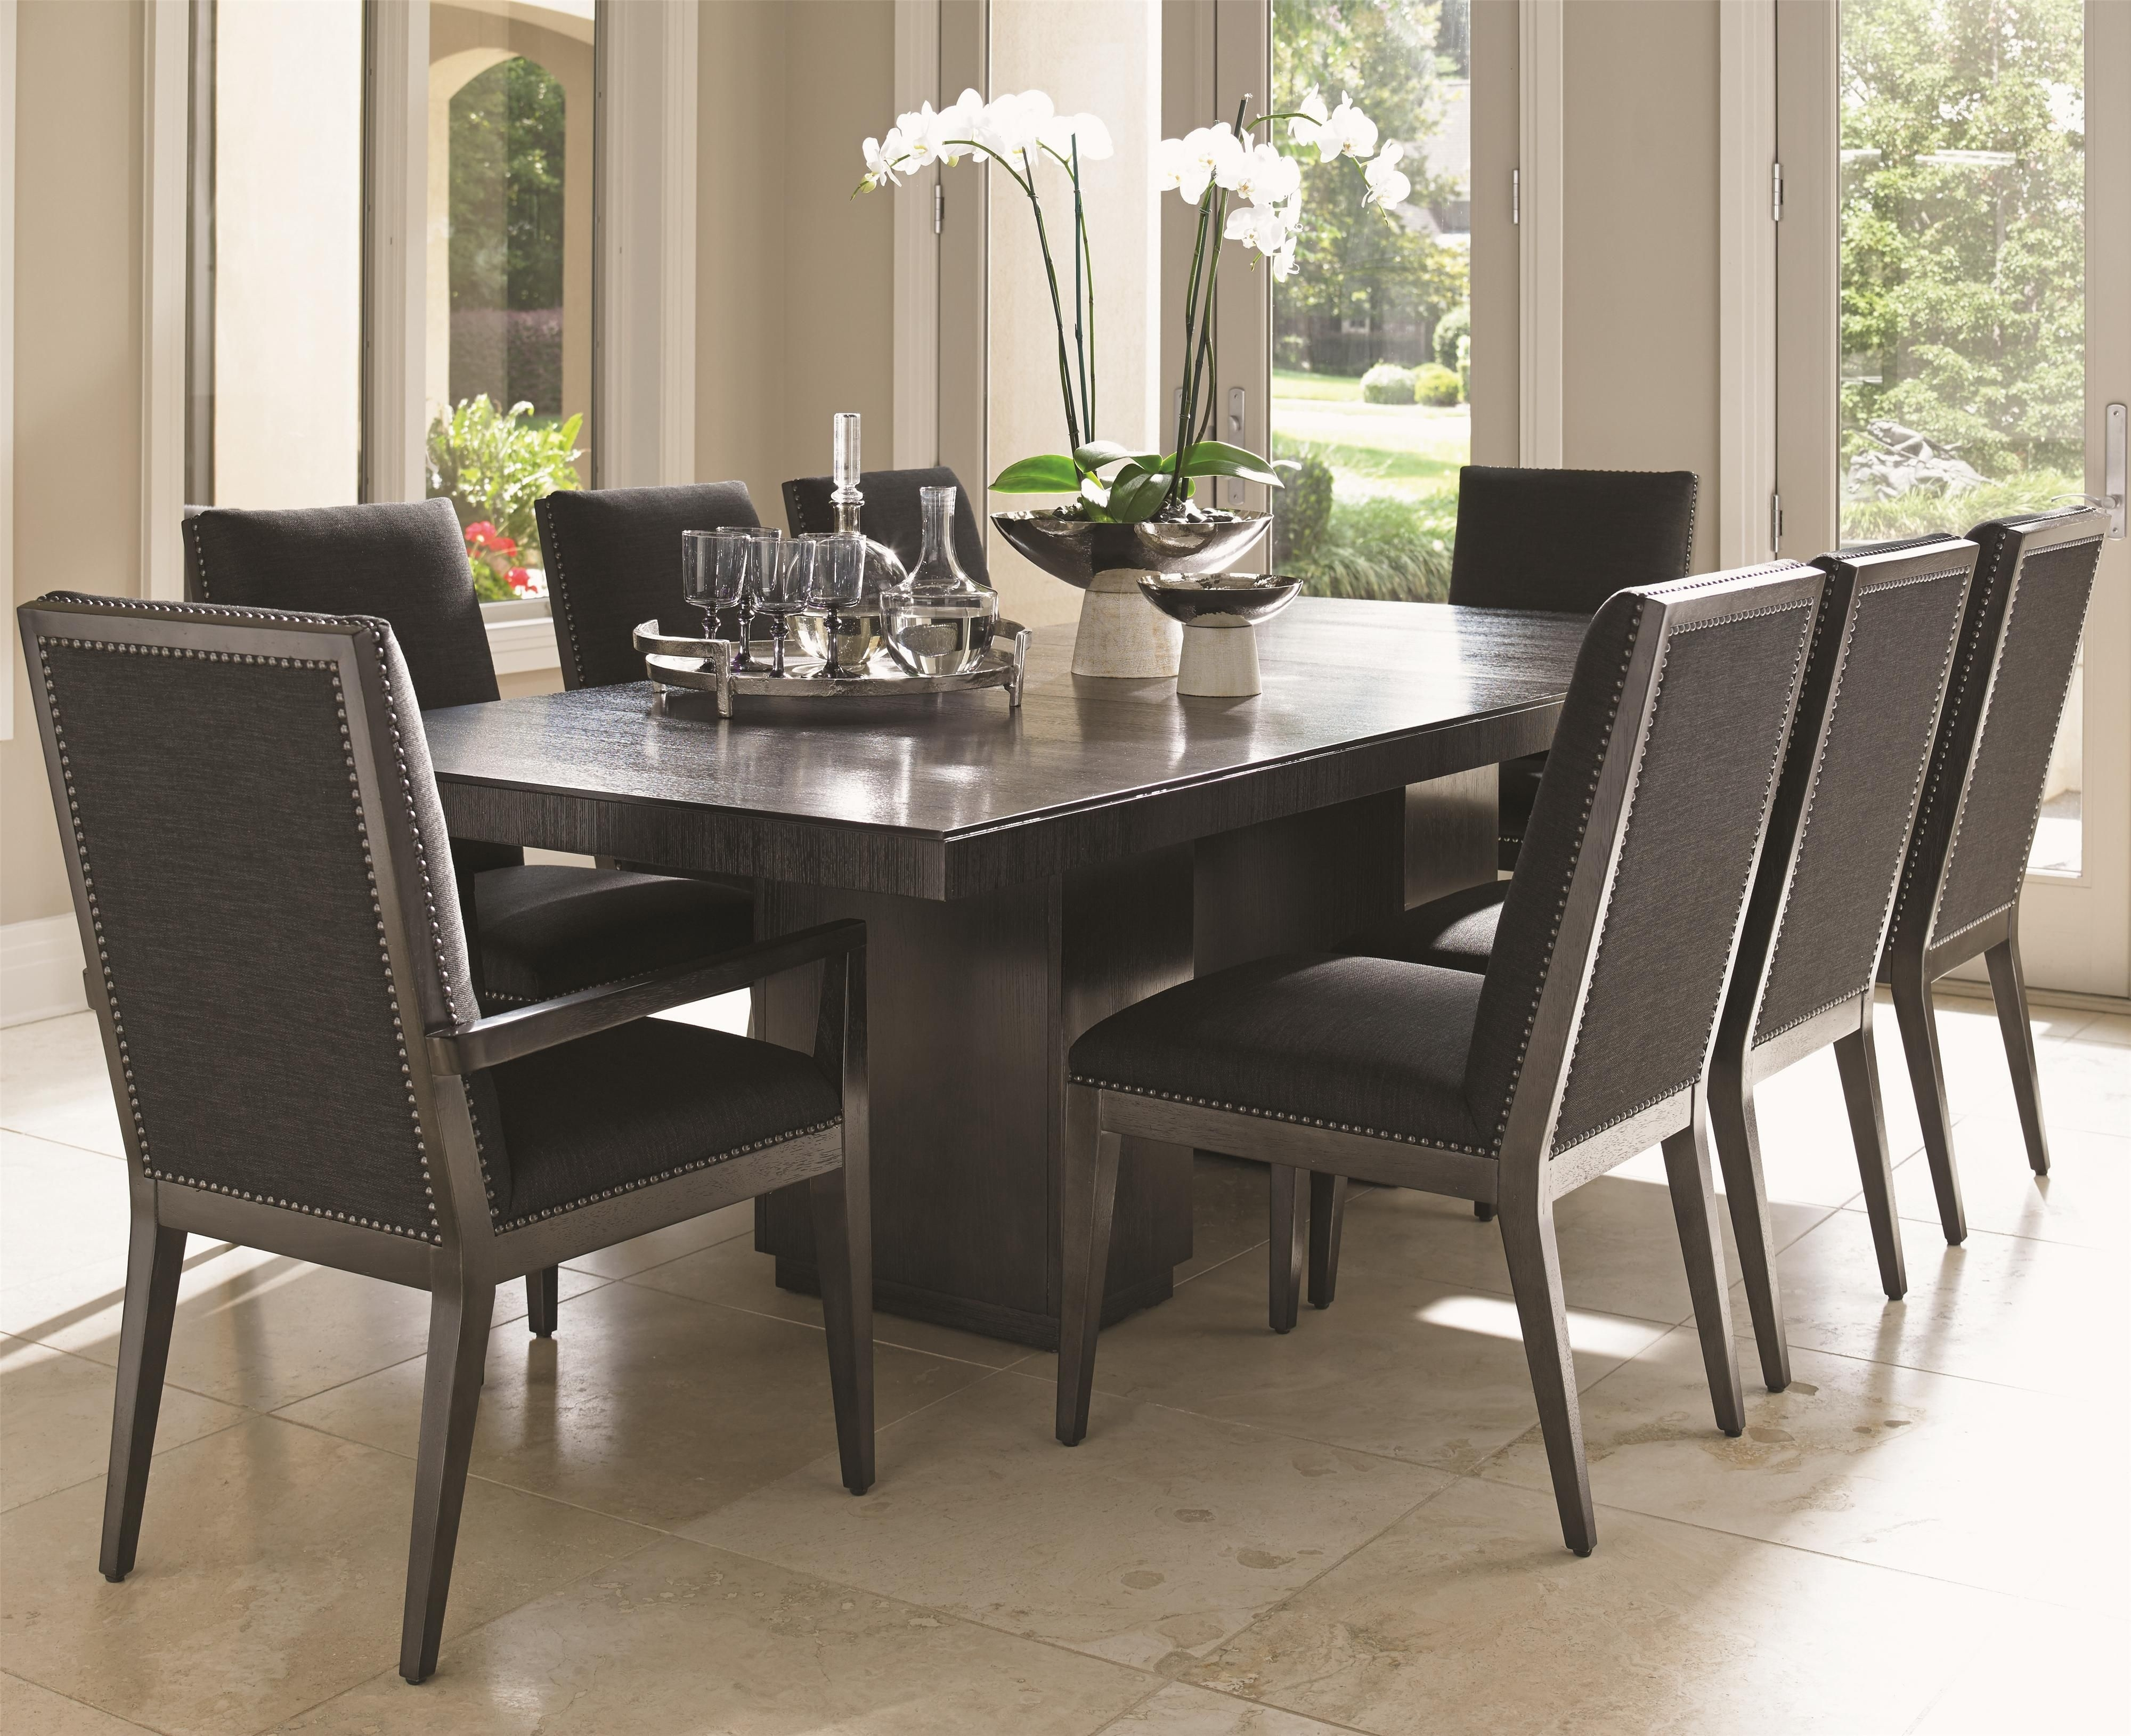 Carrera Modena Nine Piece Dining Set With Quickship Chairs In Gray Inside Recent Chapleau Ii 9 Piece Extension Dining Table Sets (Image 3 of 20)